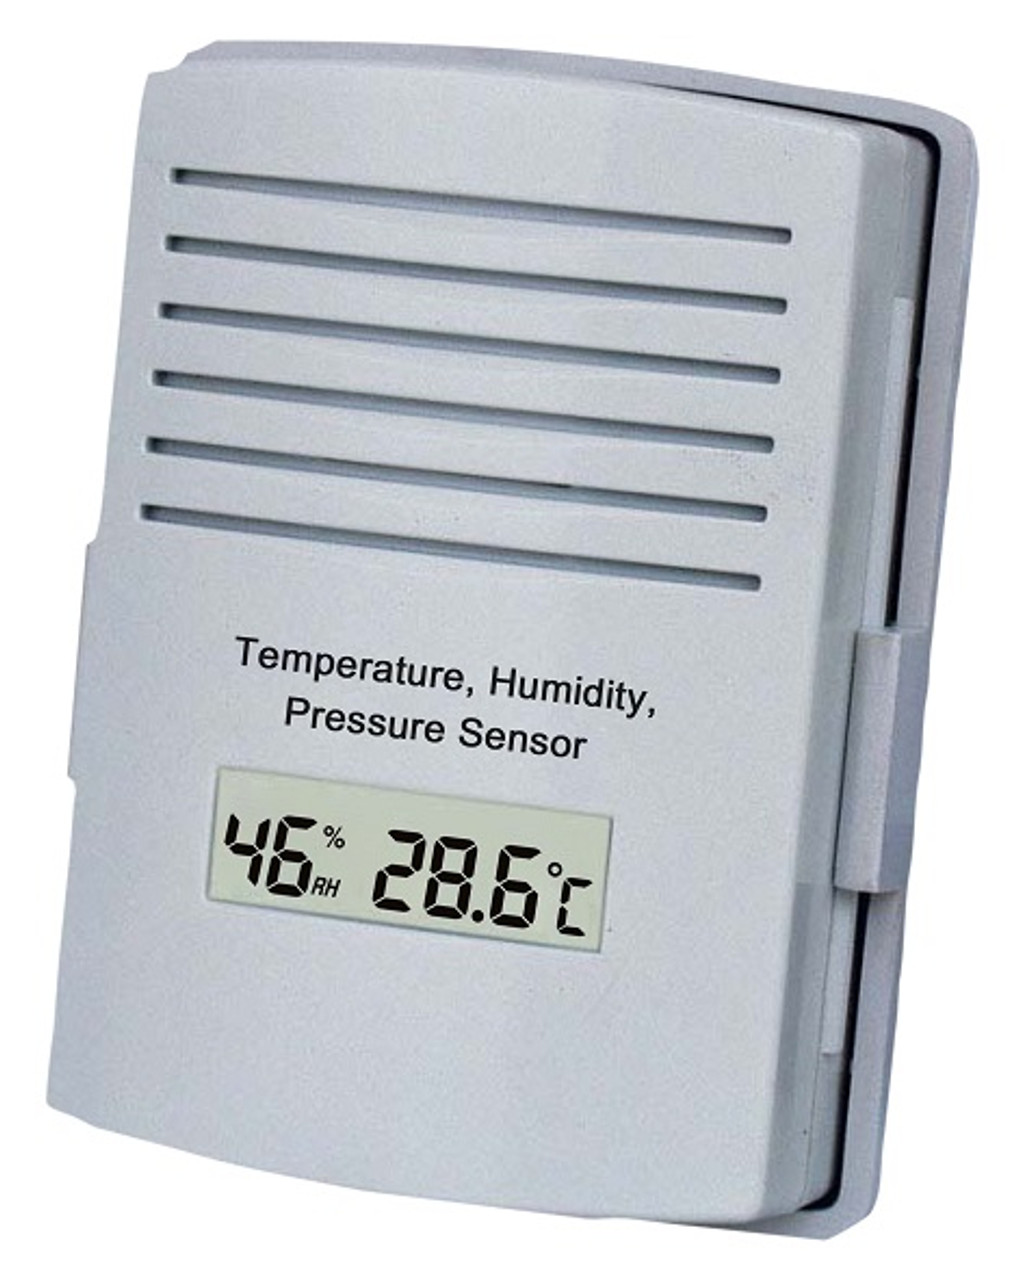 Aercus Instruments WeatherRanger - WiFi Weather Station with Real-time Internet Publishing